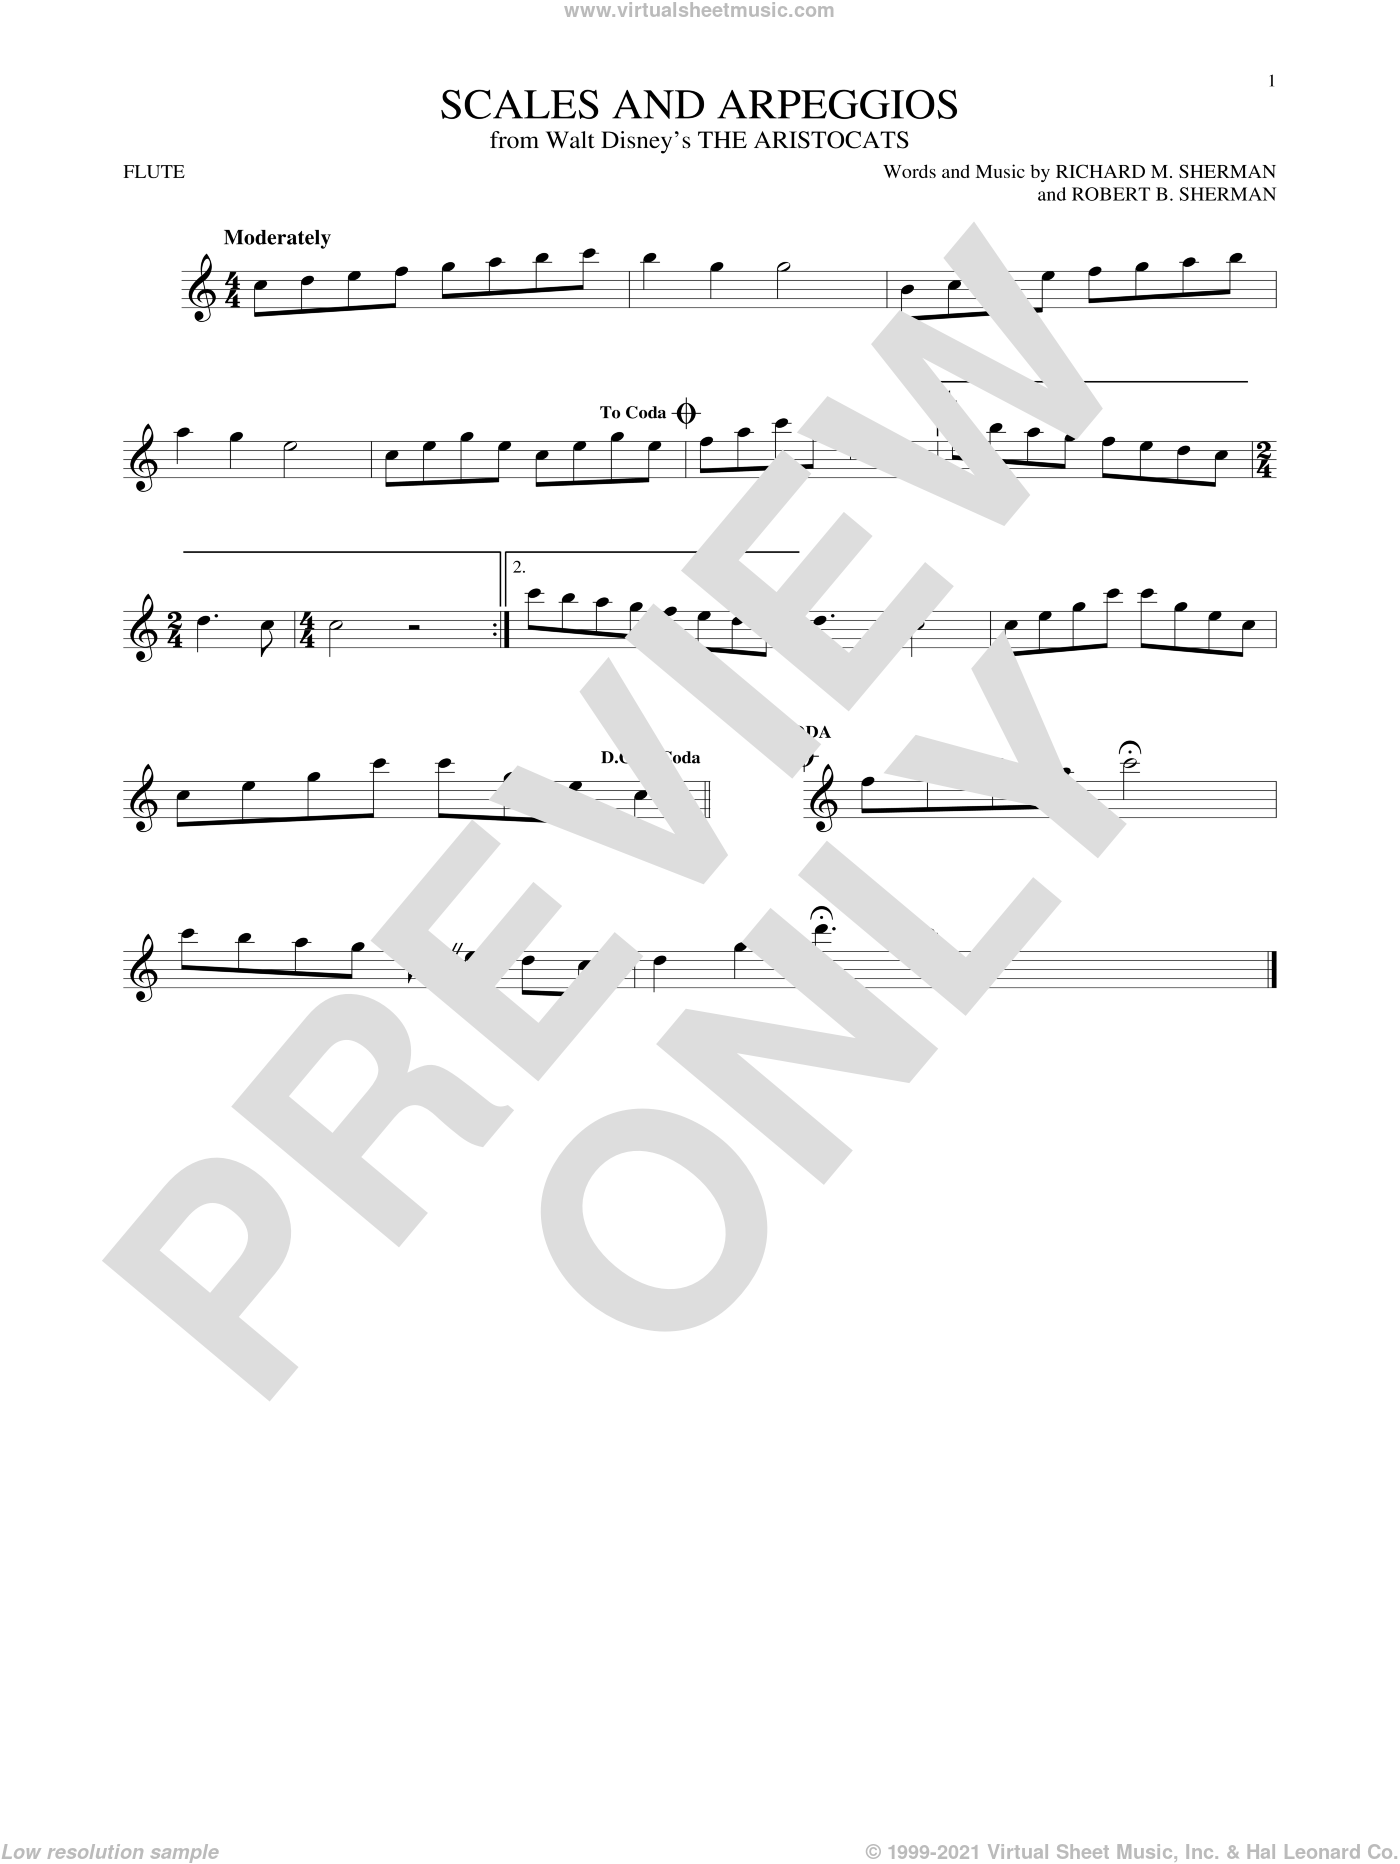 Scales And Arpeggios sheet music for flute solo by Richard M. Sherman, Richard & Robert Sherman and Robert B. Sherman. Score Image Preview.